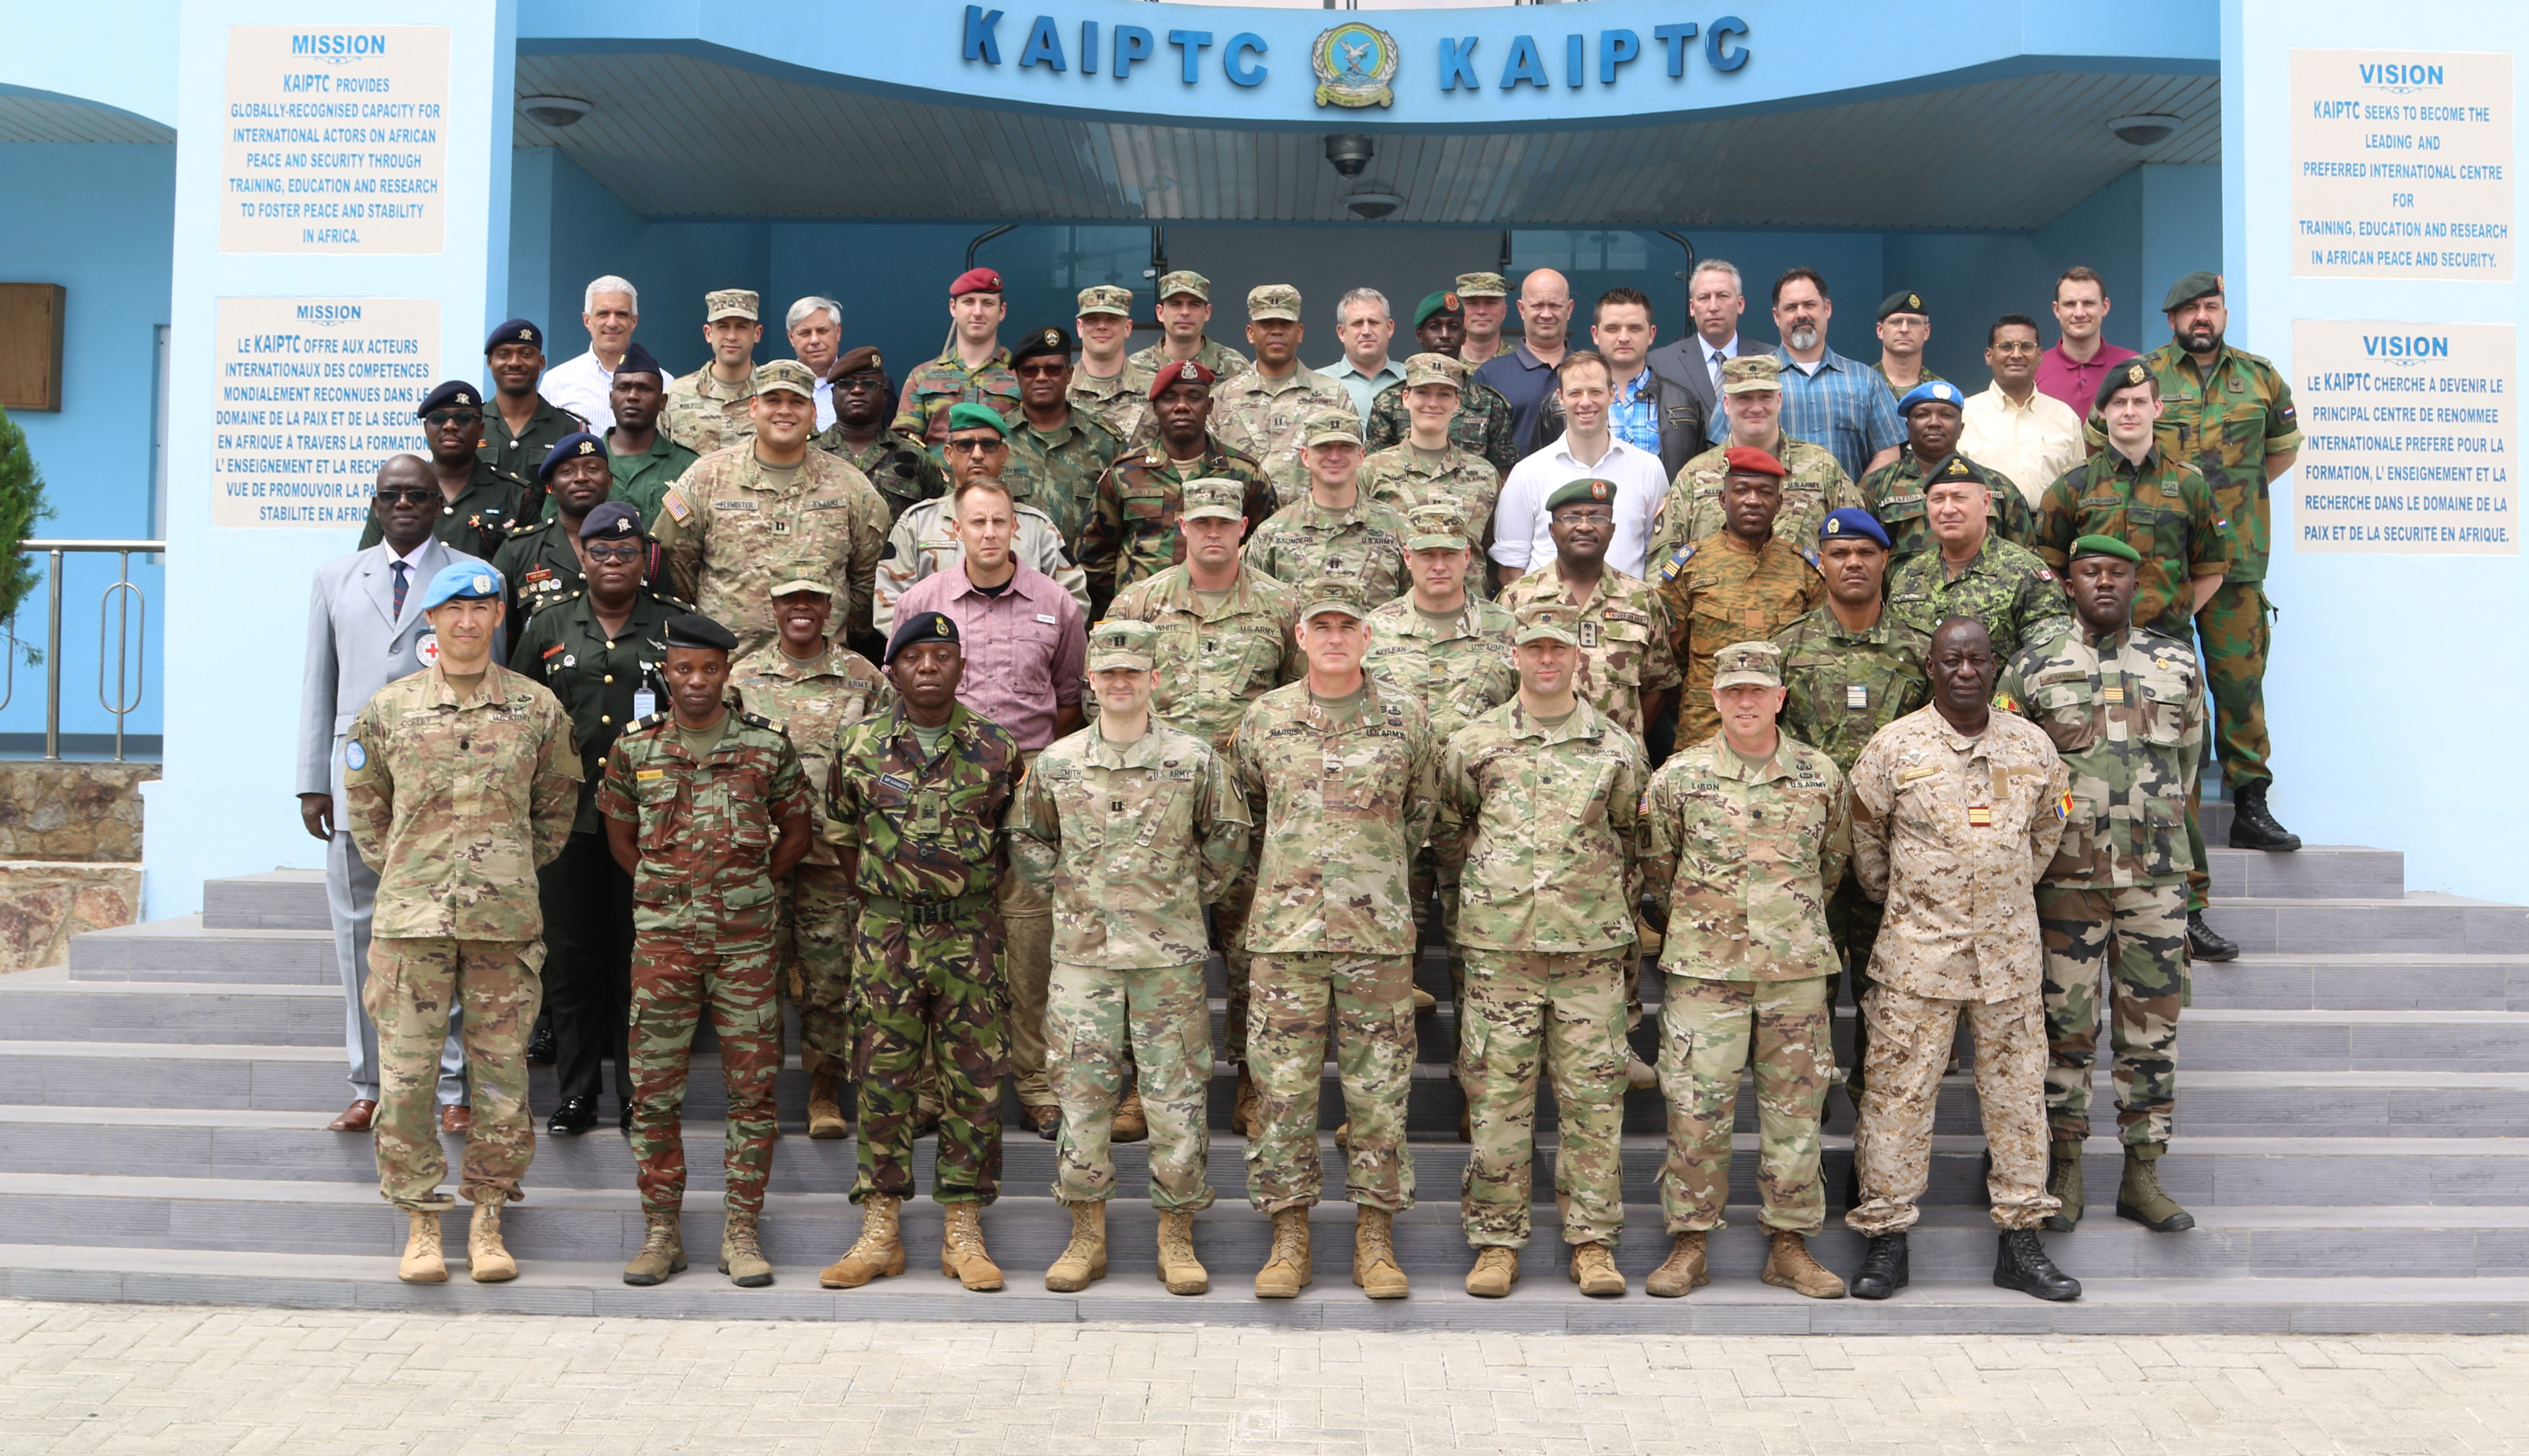 Exercise planners from various nations pose for a photograph during the United Accord 2018 Main Planning Event at the Kofi Annan International Peacekeeping Training Center, Accra, Ghana March 1, 2018. The combined-joint planning event hosted by the GAF included delegates from 5 Western partner nations and 10 African partner nations with a wide range of experience in regional peacekeeping operations, the basis for the accord series of exercises. (Photo By Sgt. 1st Class Chris Bridson)